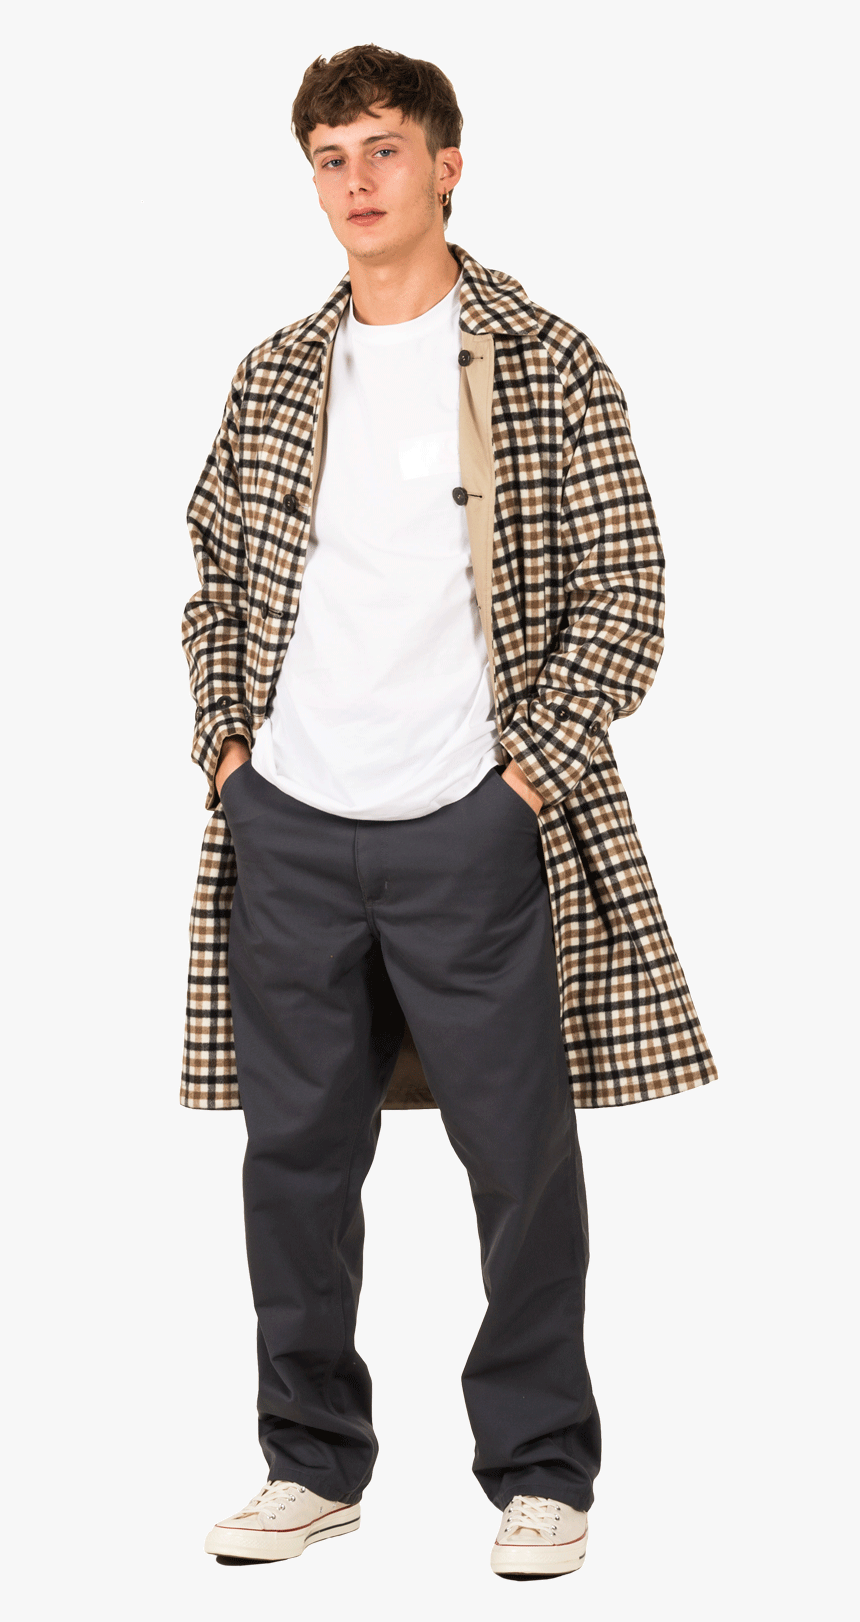 Gents Gm-112 Mo2786 Besh - Plaid, HD Png Download, Free Download